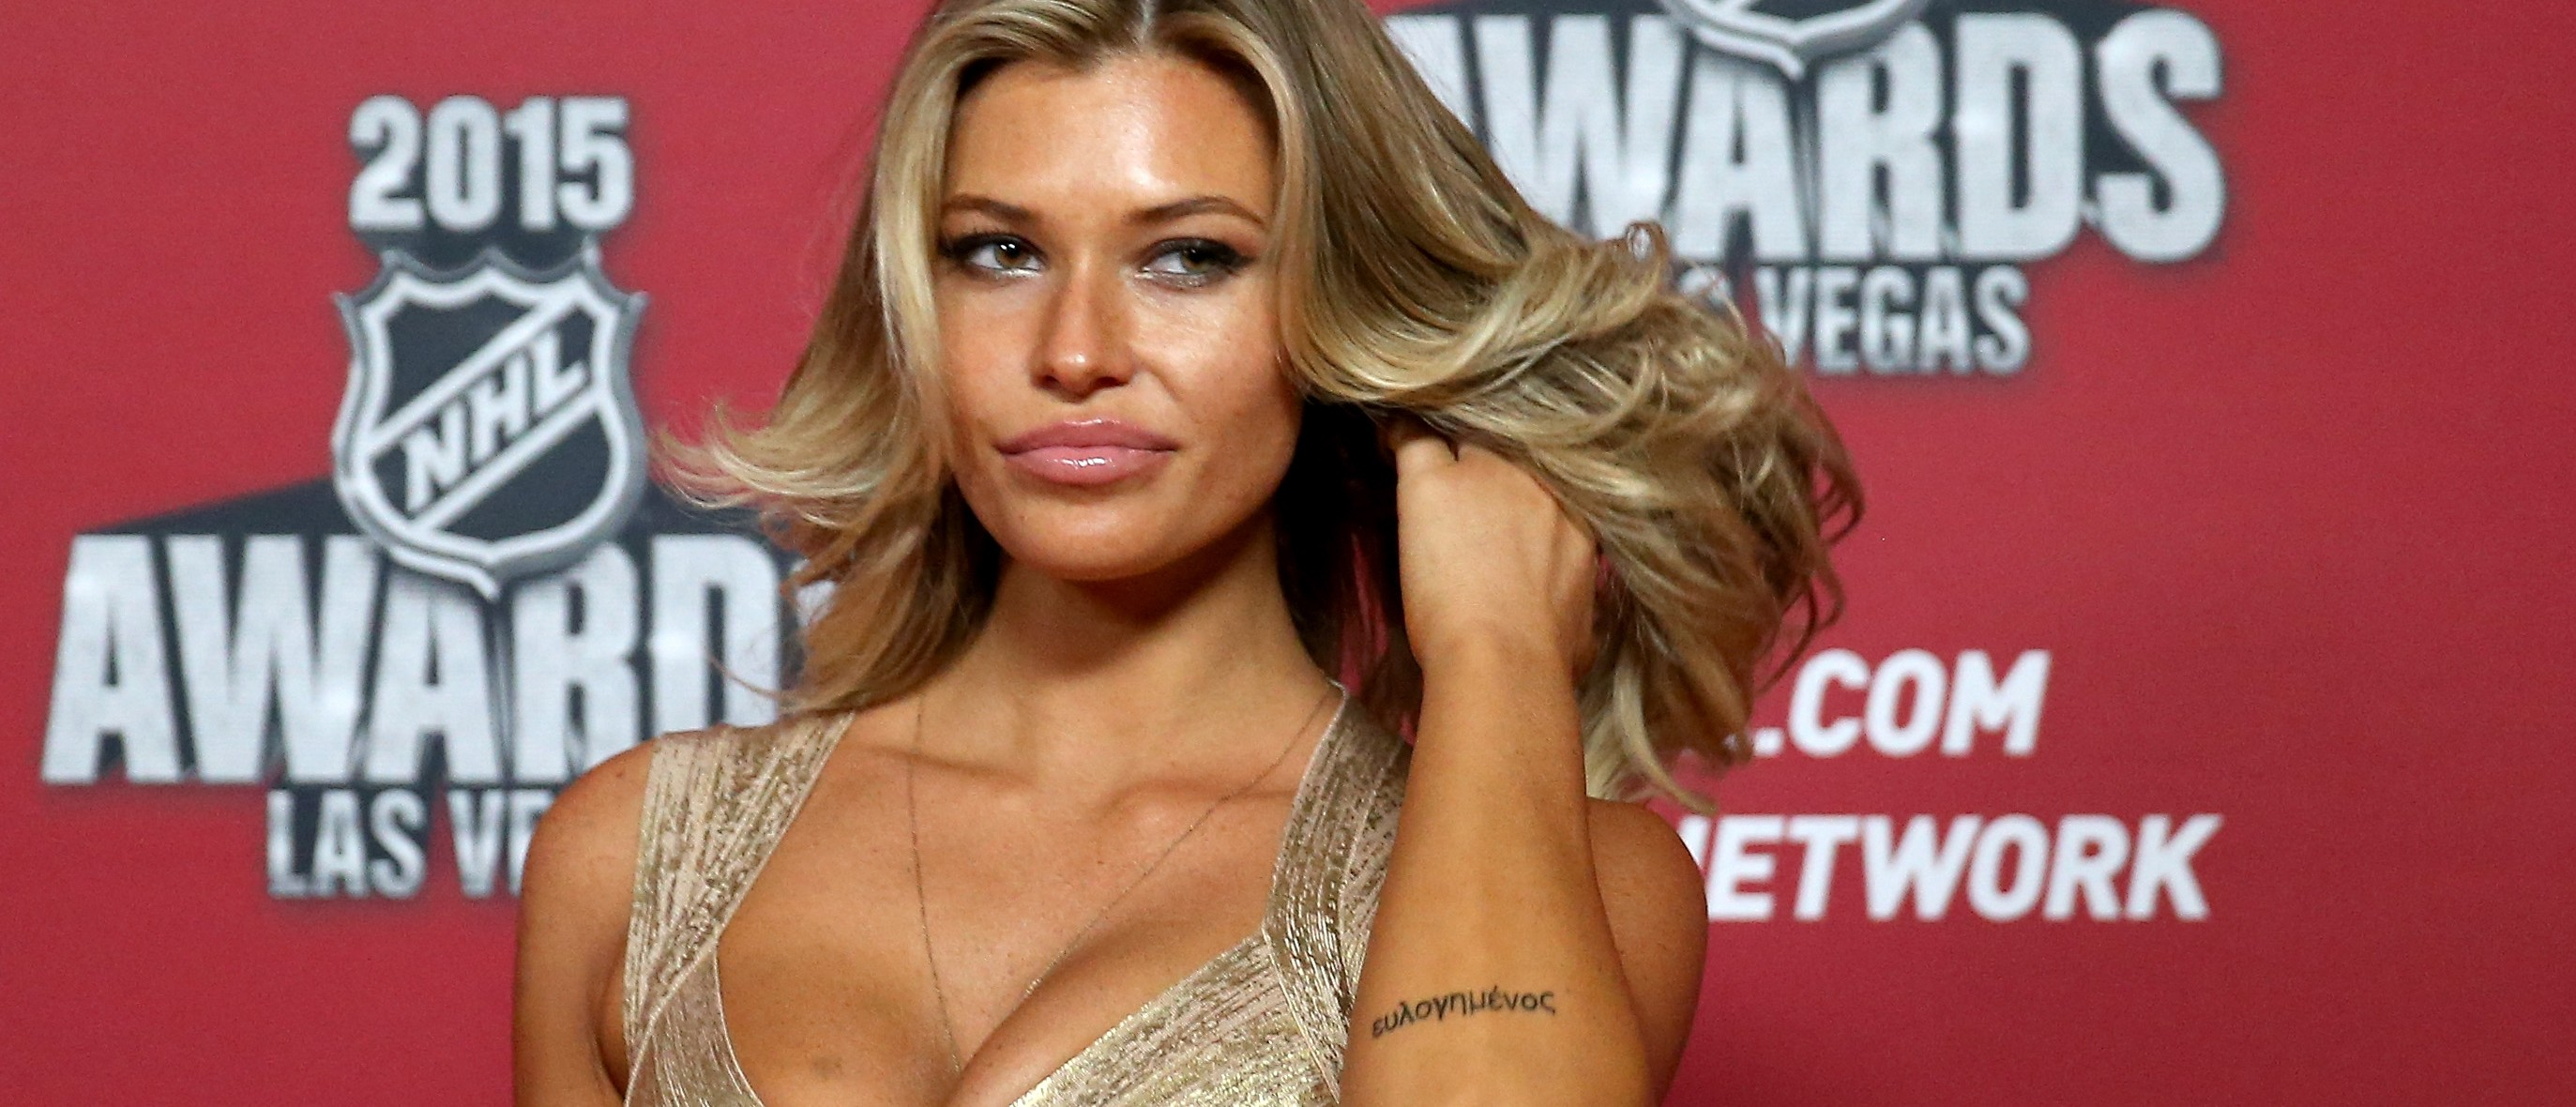 Cleavage Samantha Hoopes nude (34 photo), Ass, Hot, Feet, cameltoe 2017